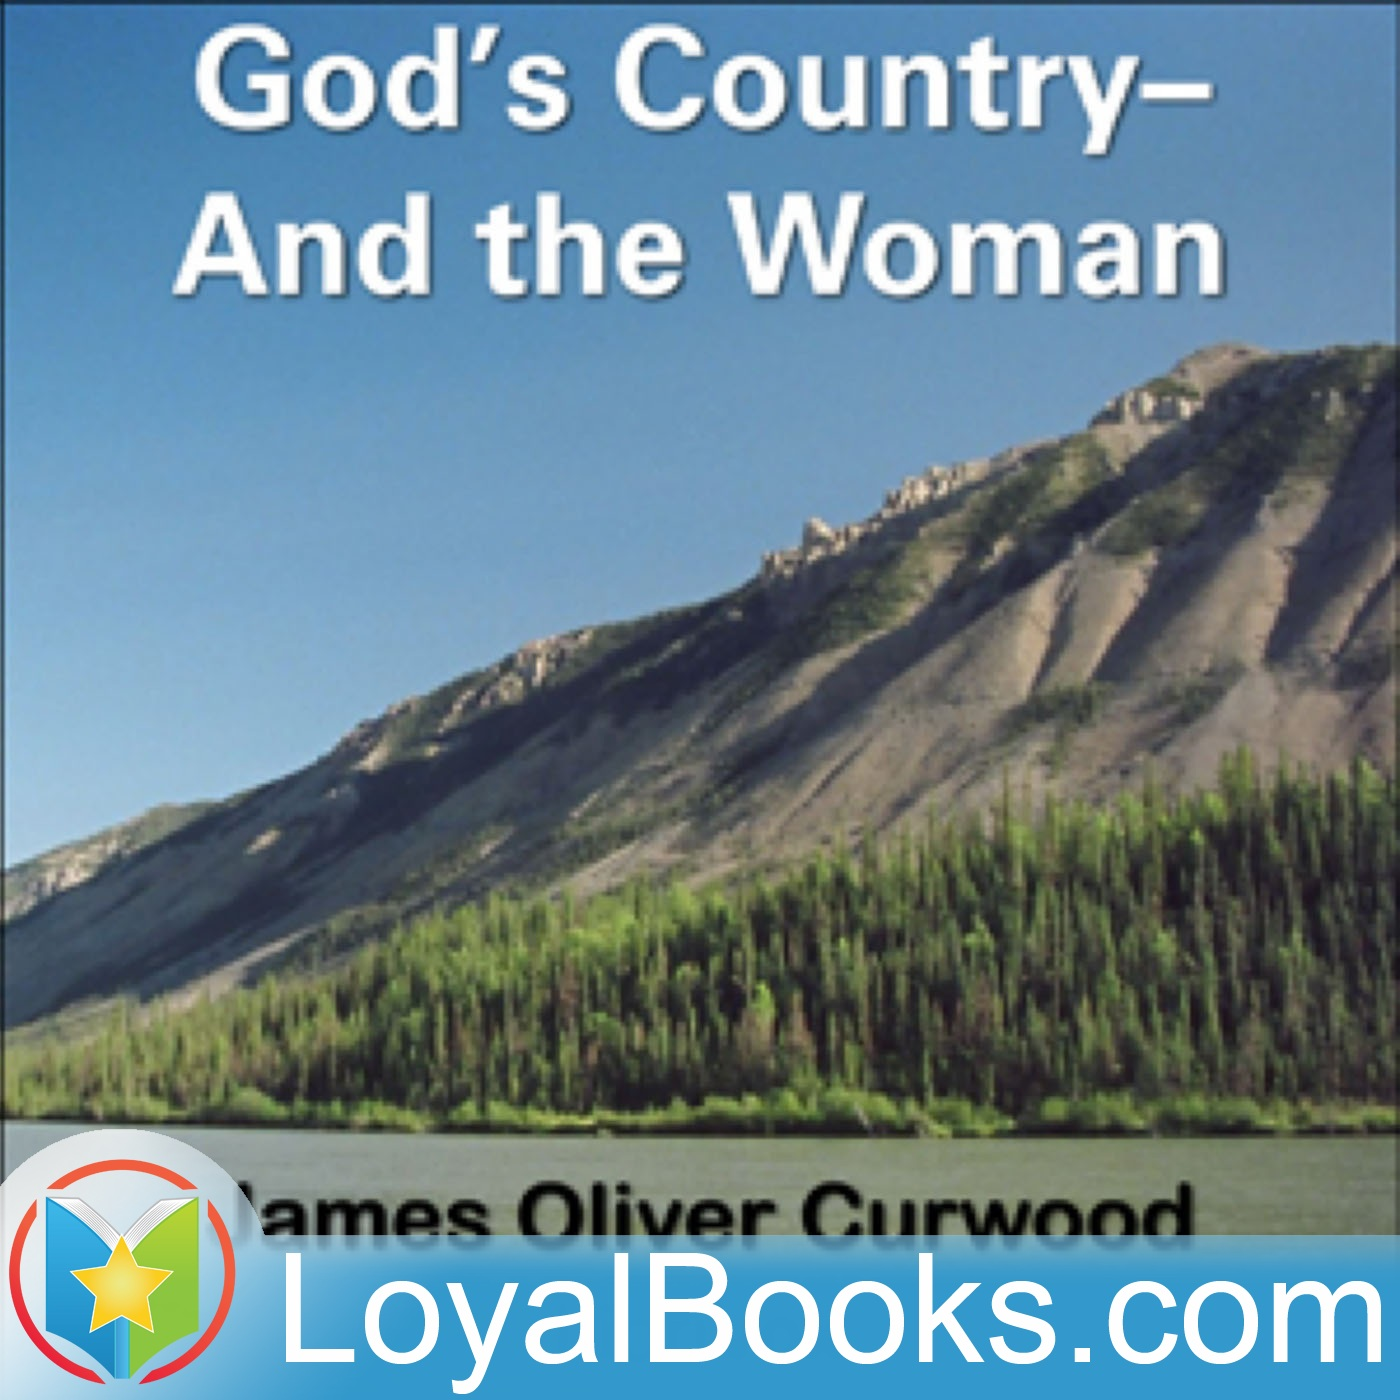 <![CDATA[God's Country—And the Woman by James Oliver Curwood]]>